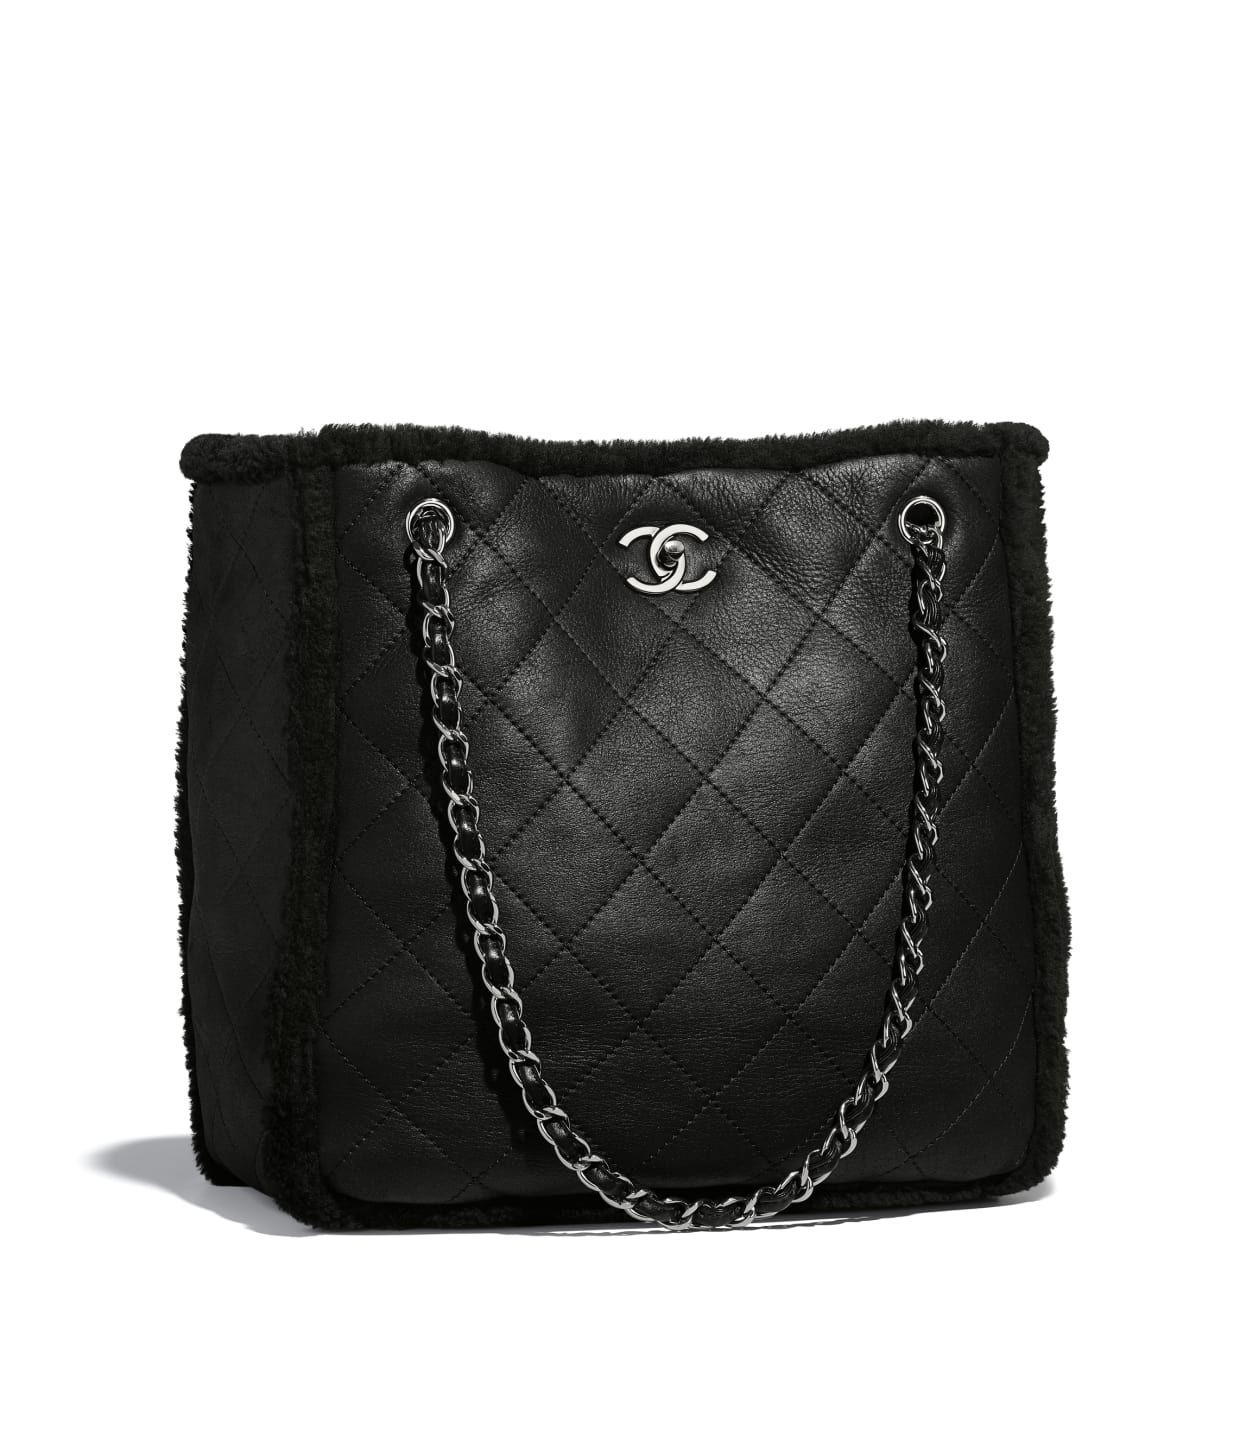 b7fd37fb785d Shearling Lambskin   Ruthenium-Finish Metal Black Large Shopping Bag ...